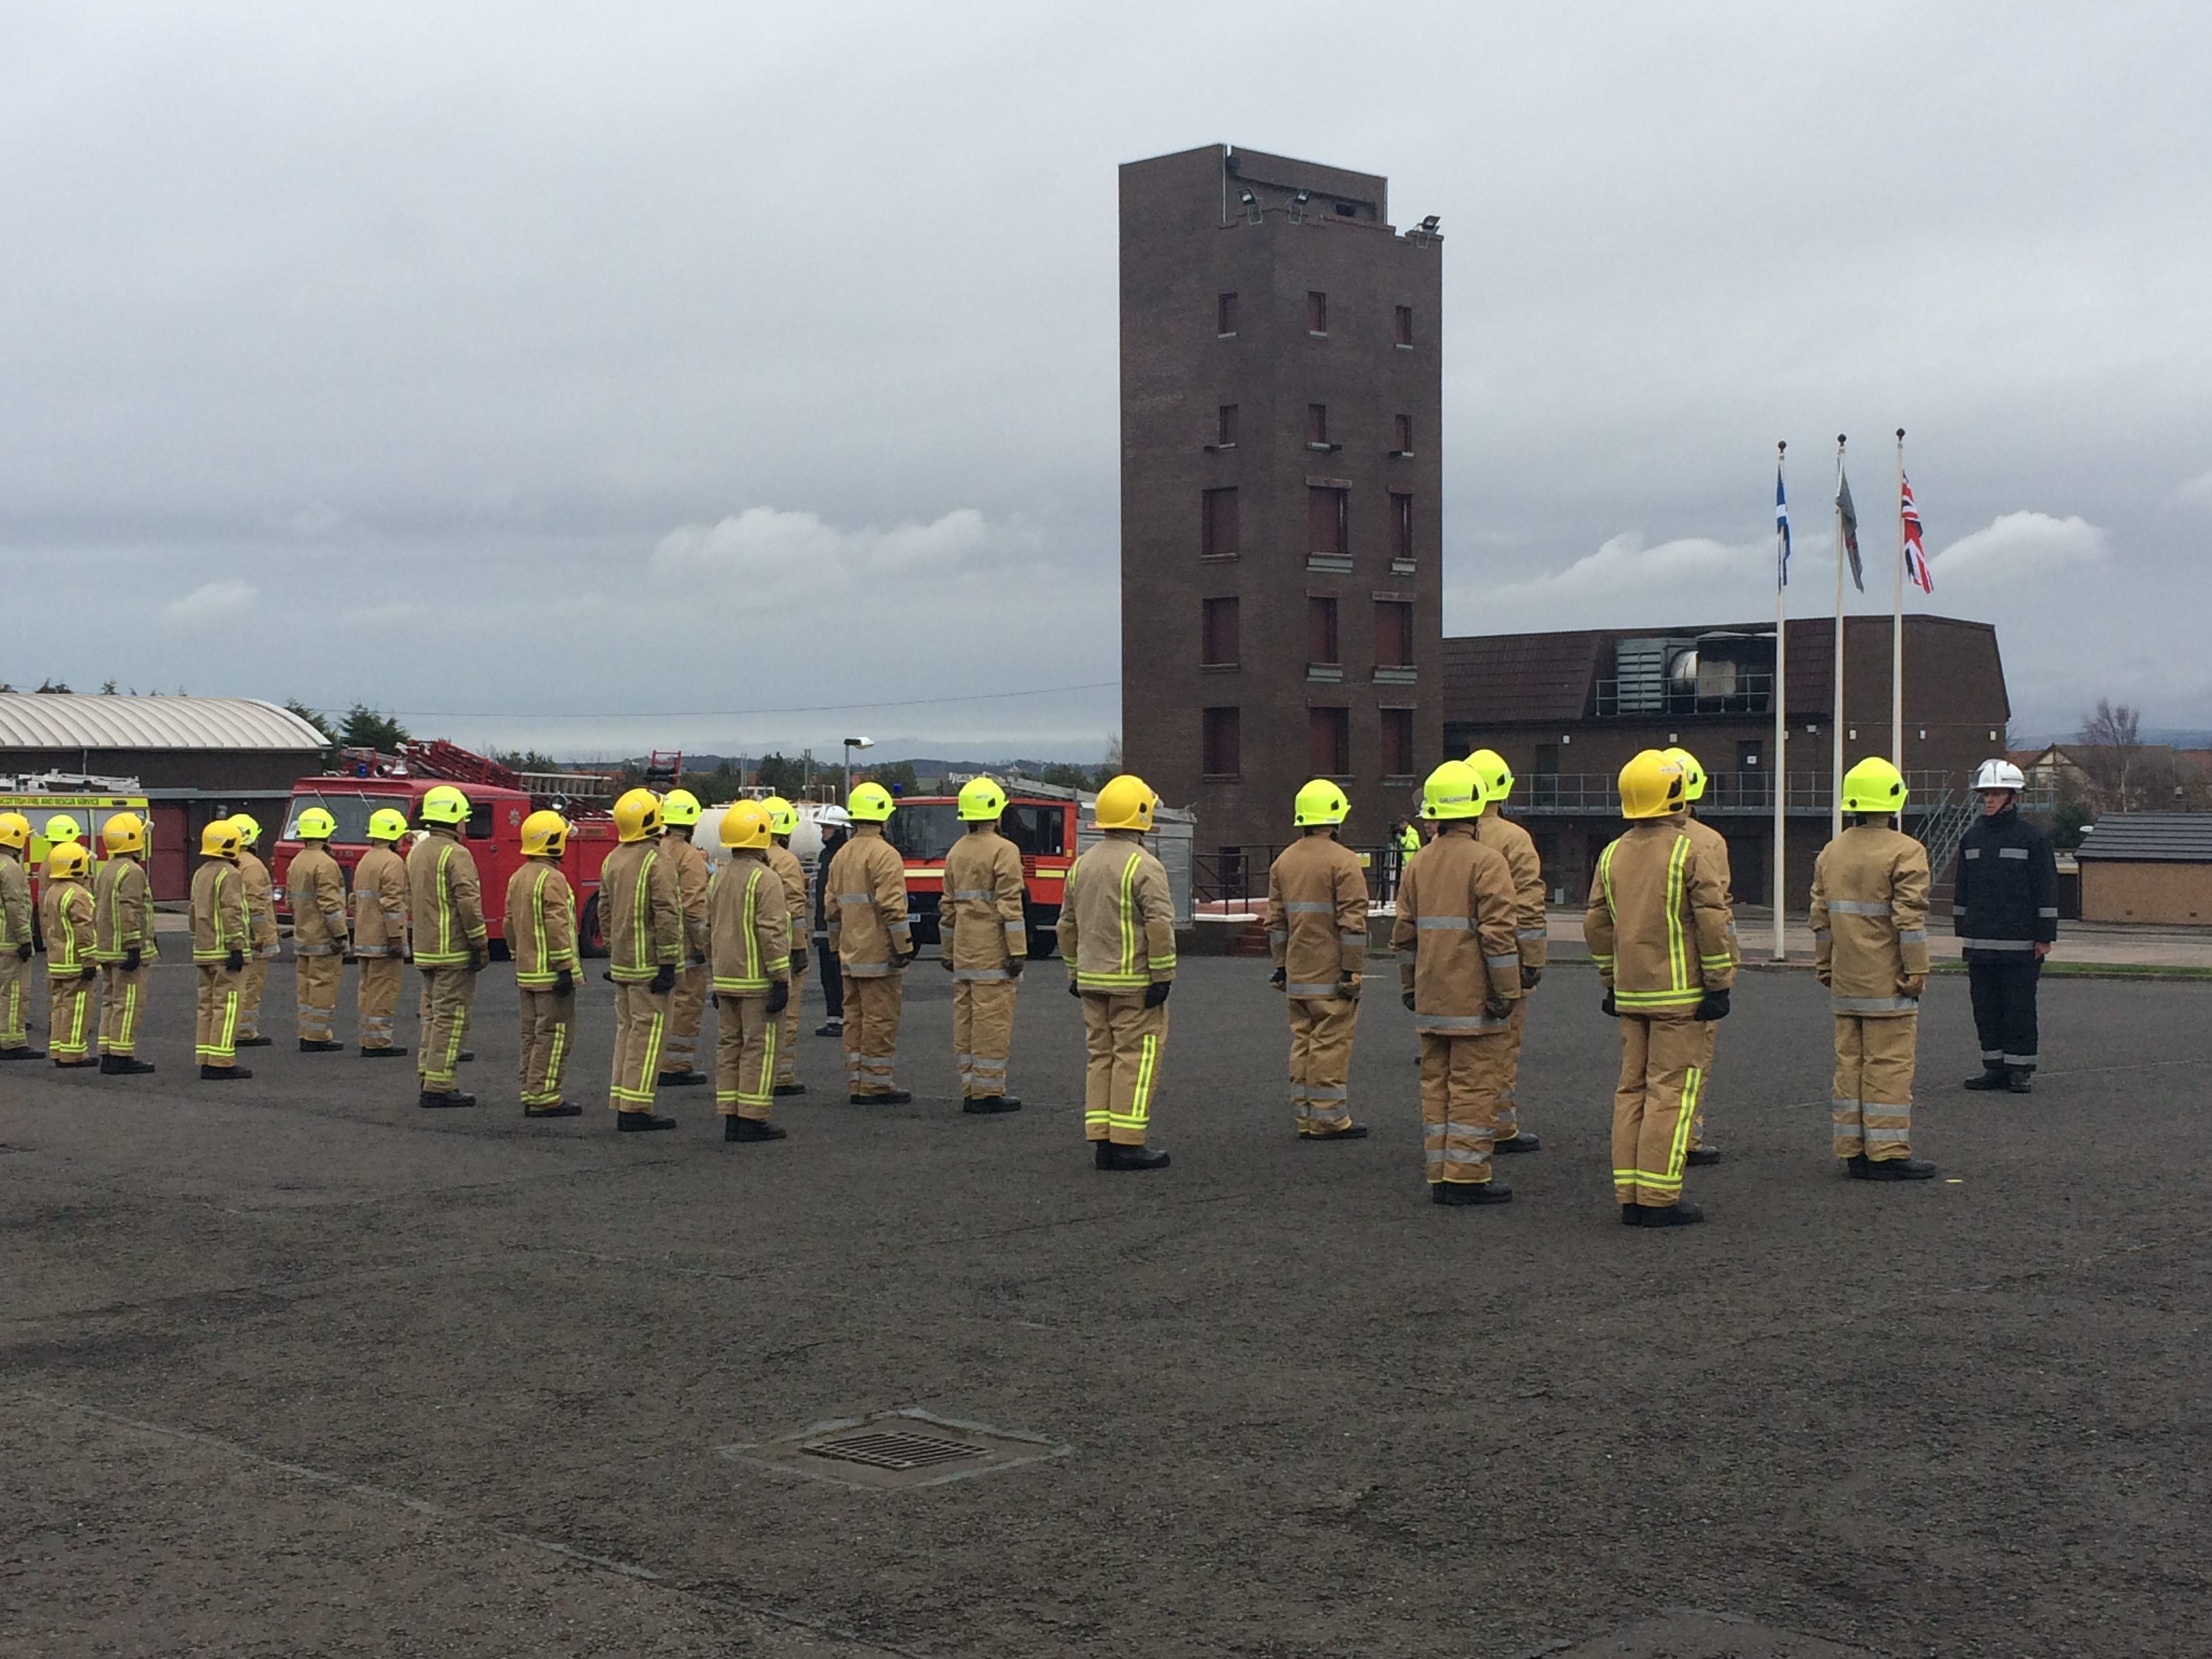 SFRS College Gullane runs its last course